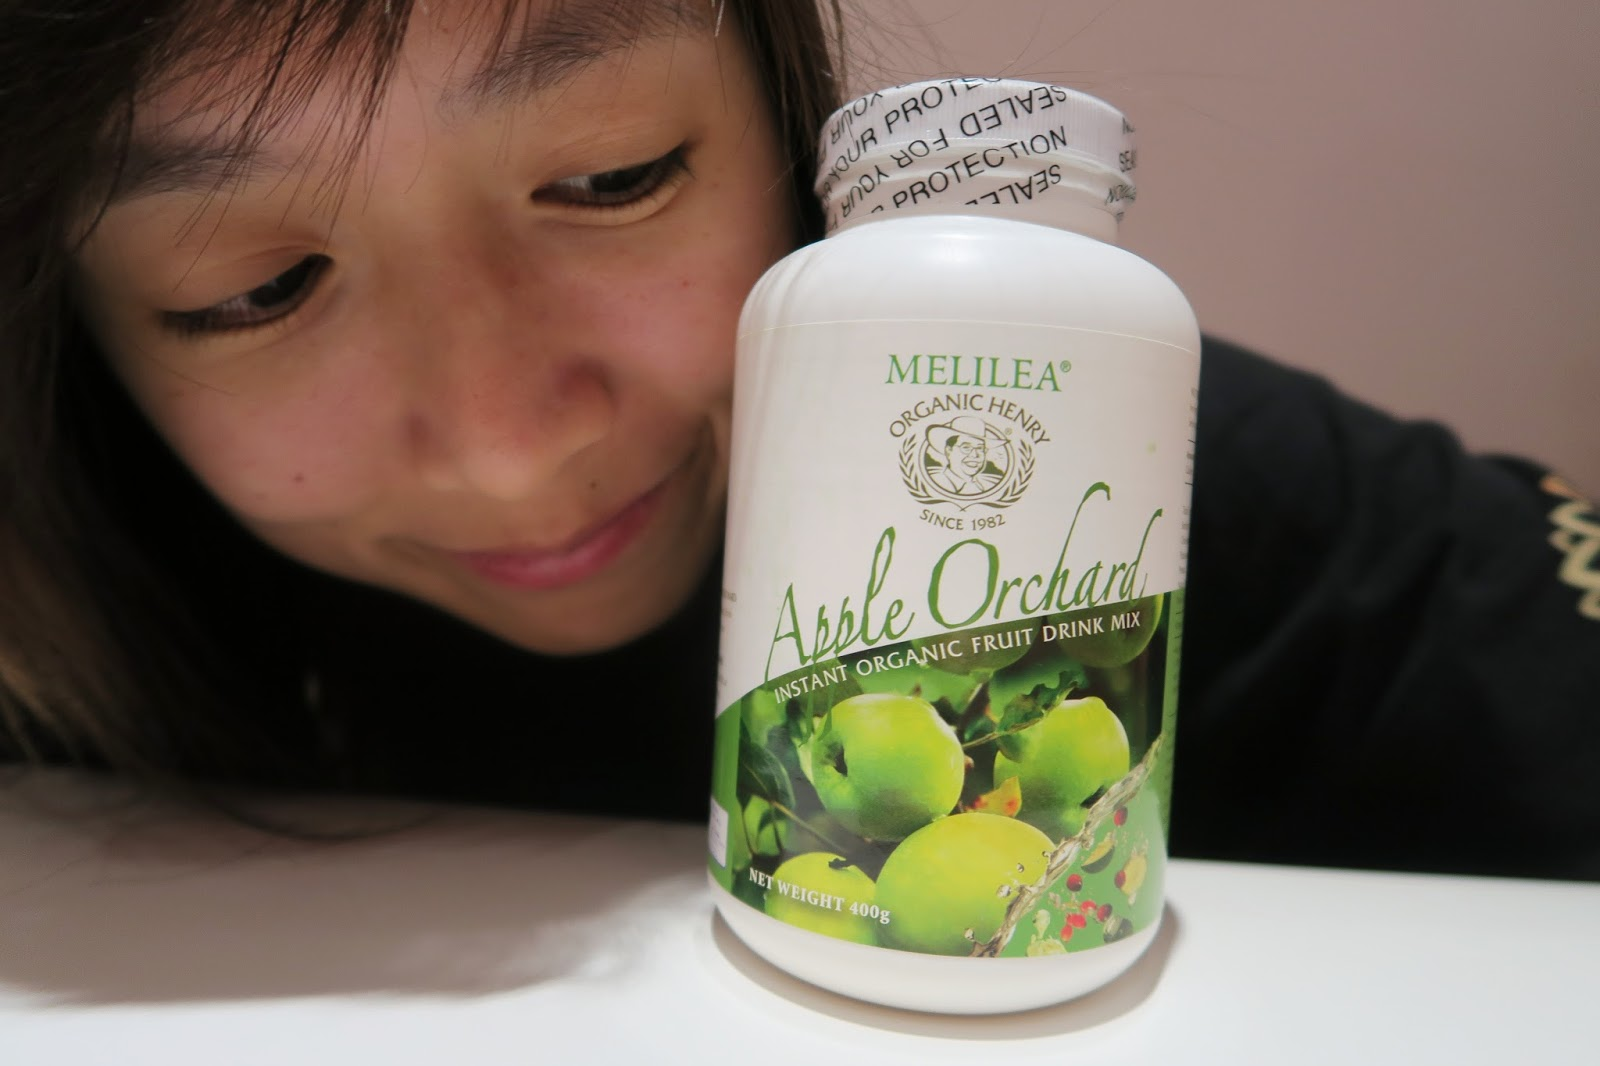 Melilea Celebration Go Organic Kaiting Hearts Greenfield 16oz The Henry Apple Orchard Powder No Surprise Why Because It Tastes Exactly Like Juice Is Made From 100